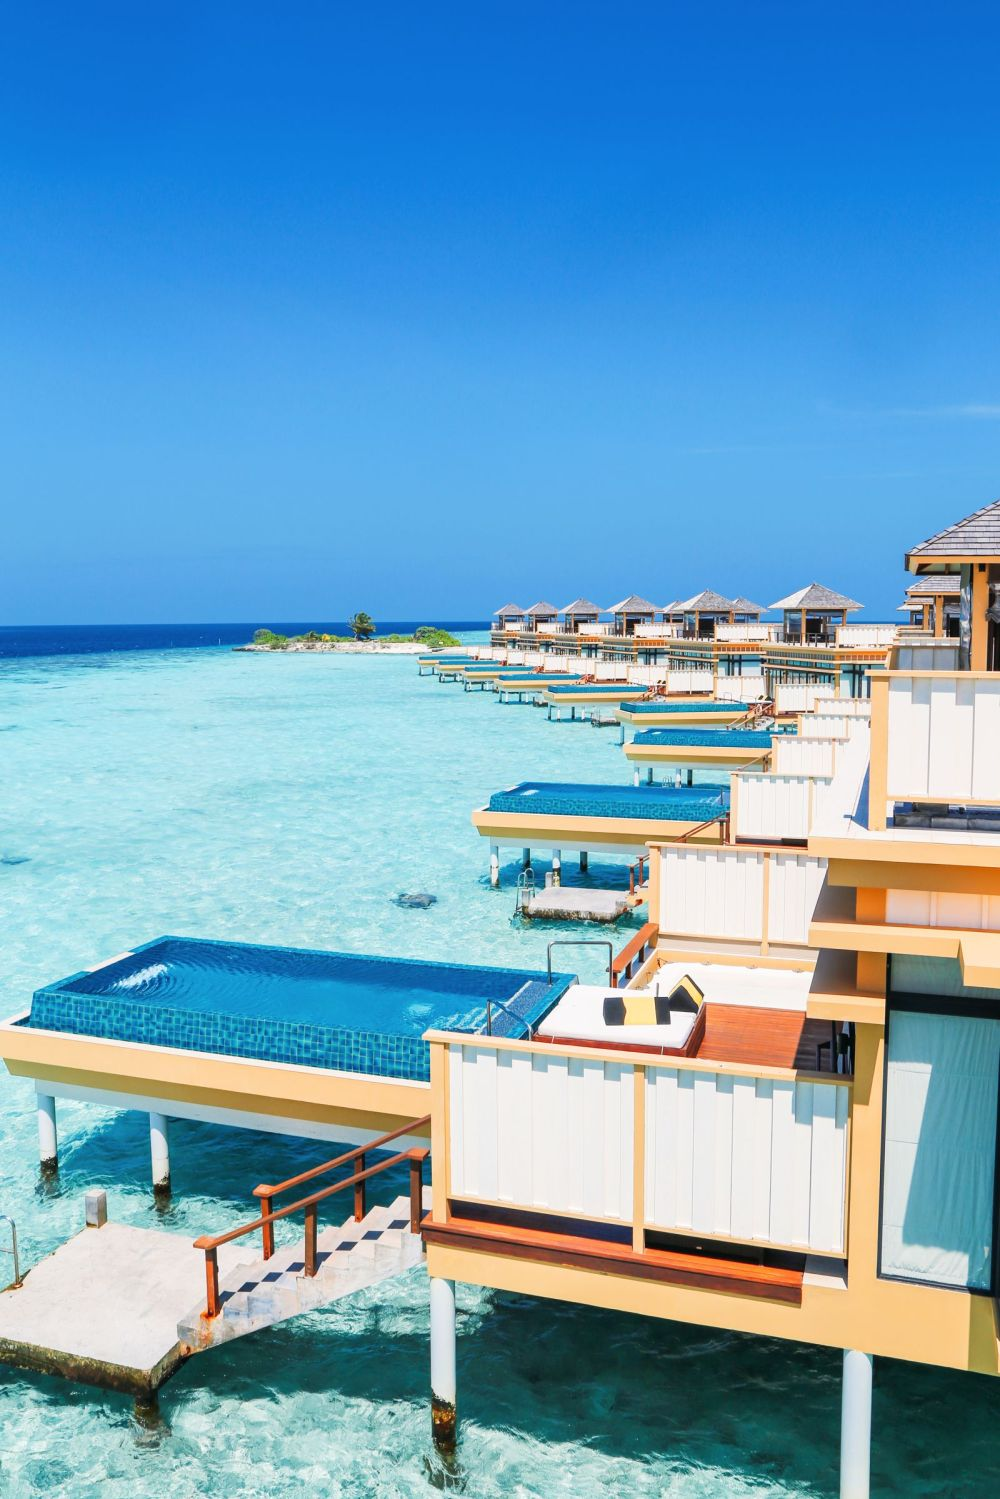 Angsana Velavaru - The Most Amazing In-Ocean Villa In The Maldives (12)